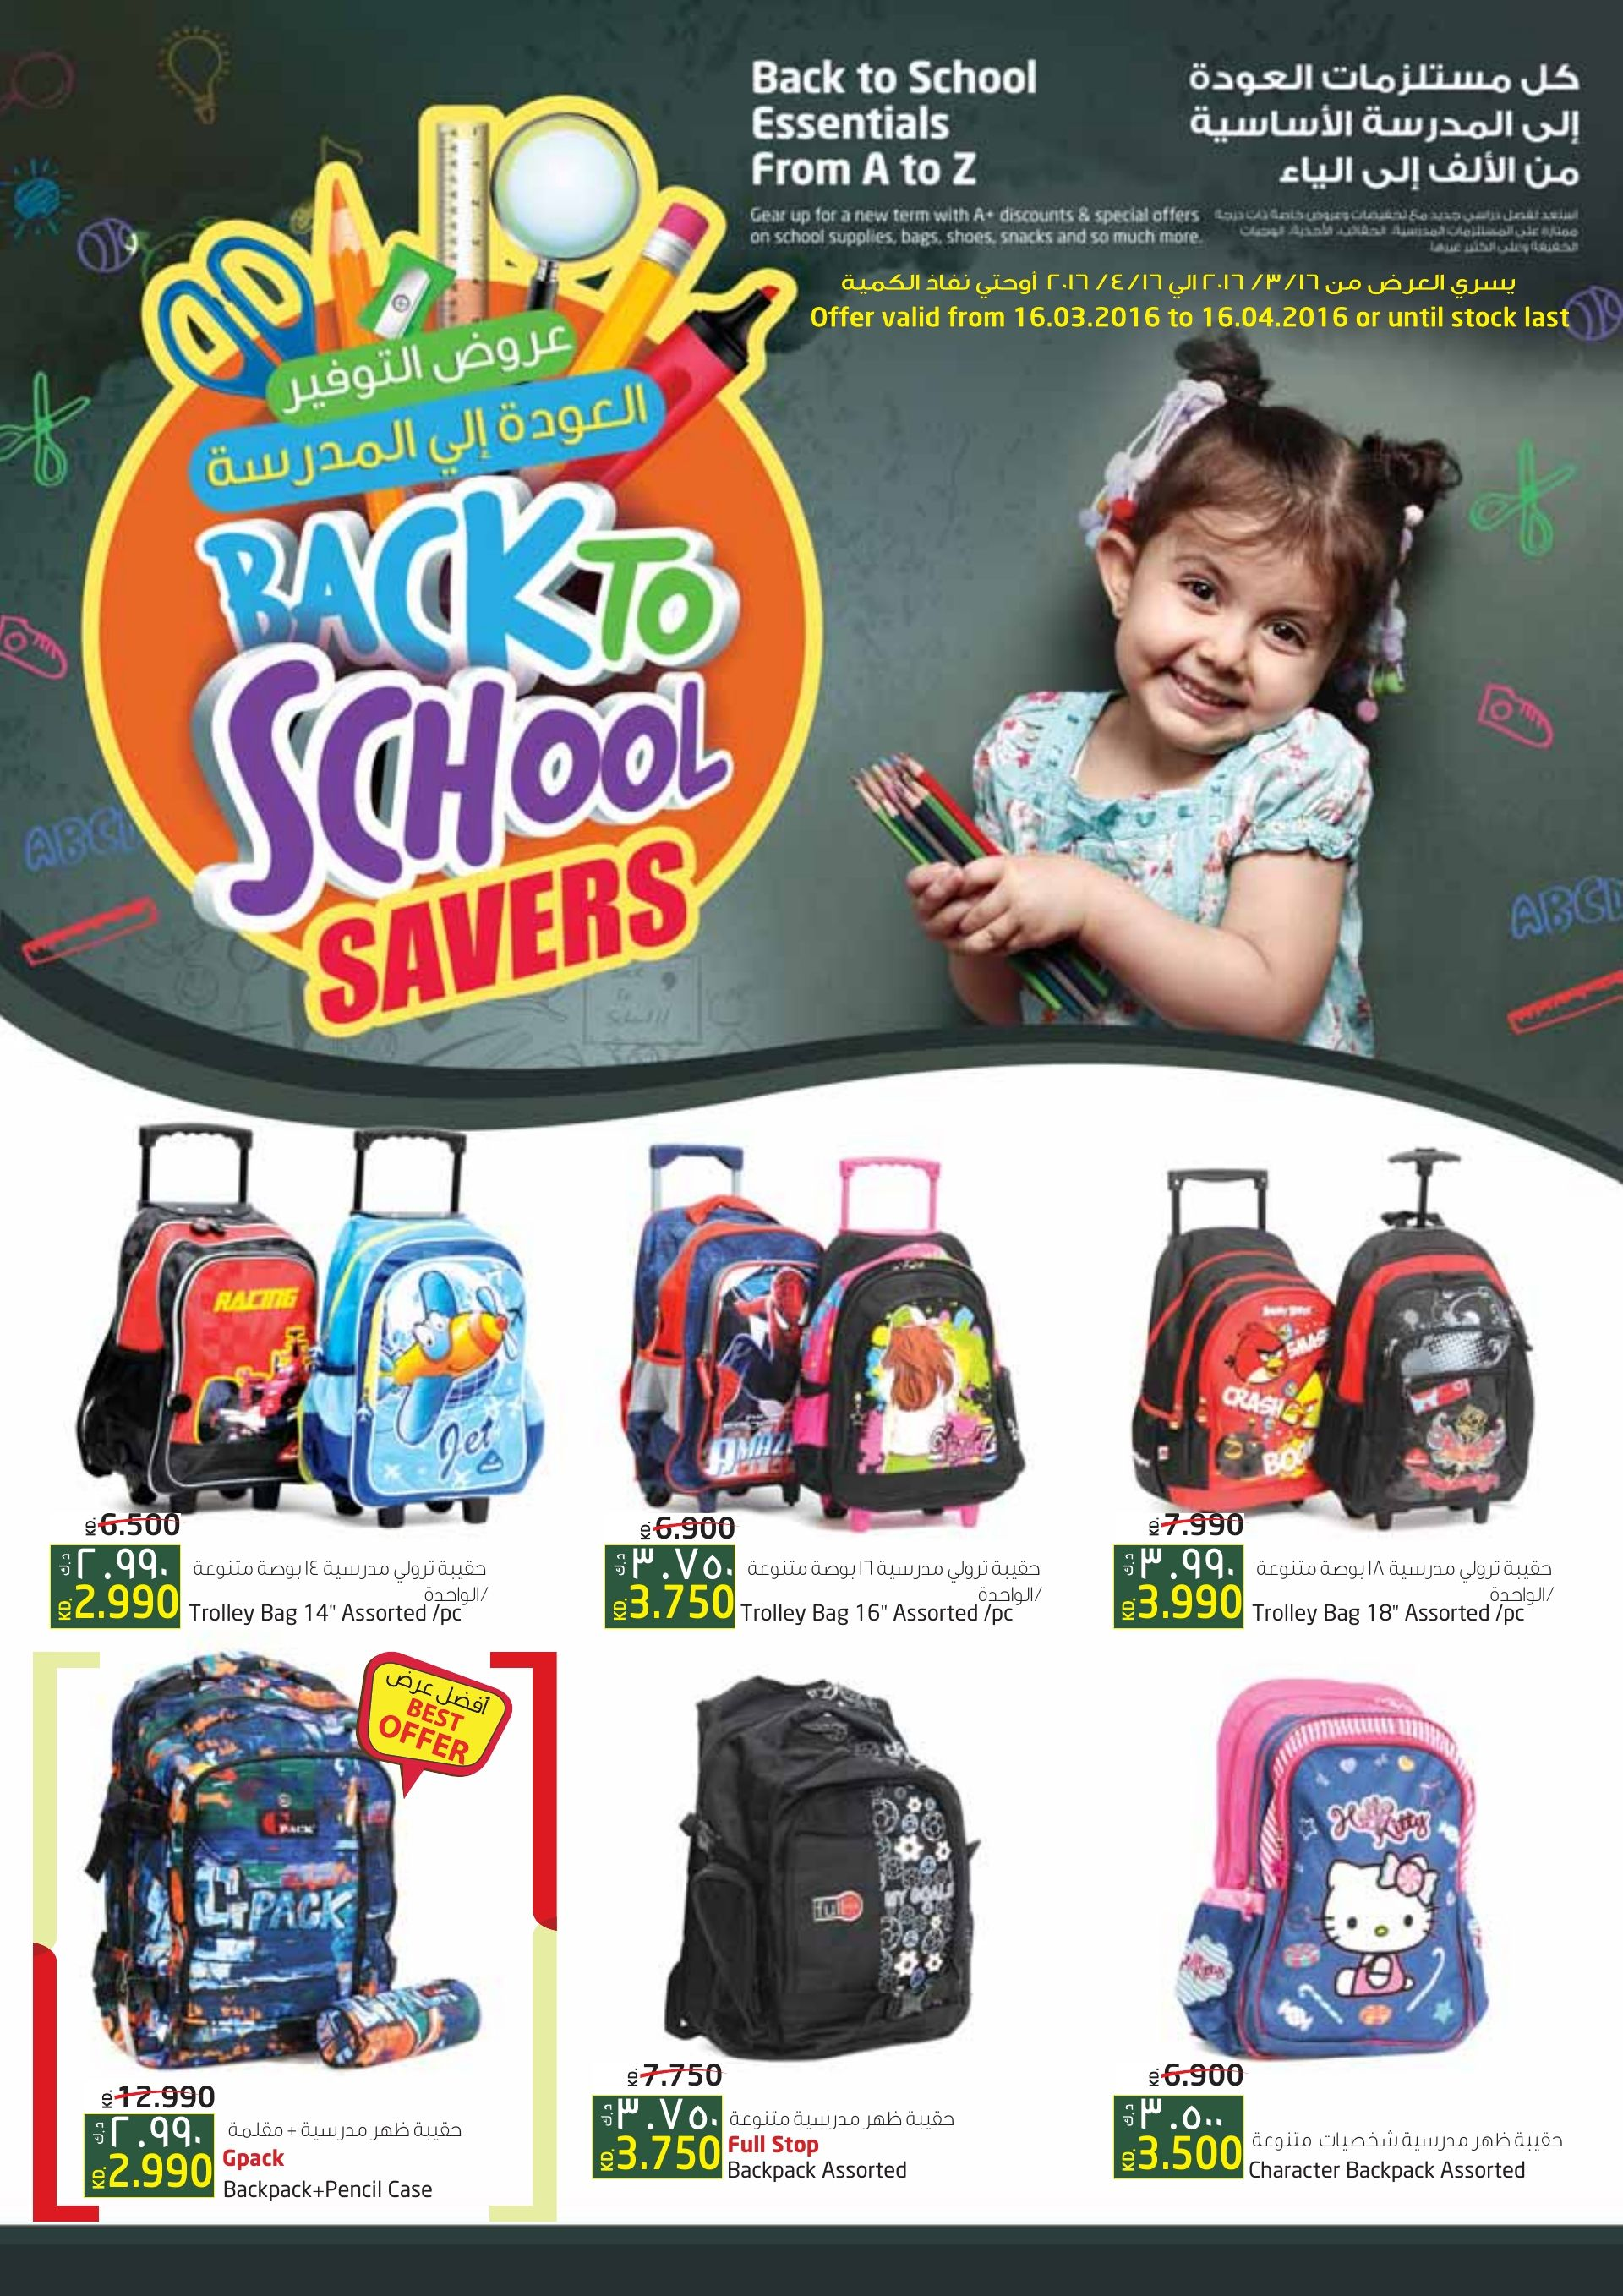 Lulu 1/2KD,1KD,2KD Offer & Back to School Offer KUWAIT (16th March 2016 to 26th March 2016) - UAE SHOPPING INFO !!!!